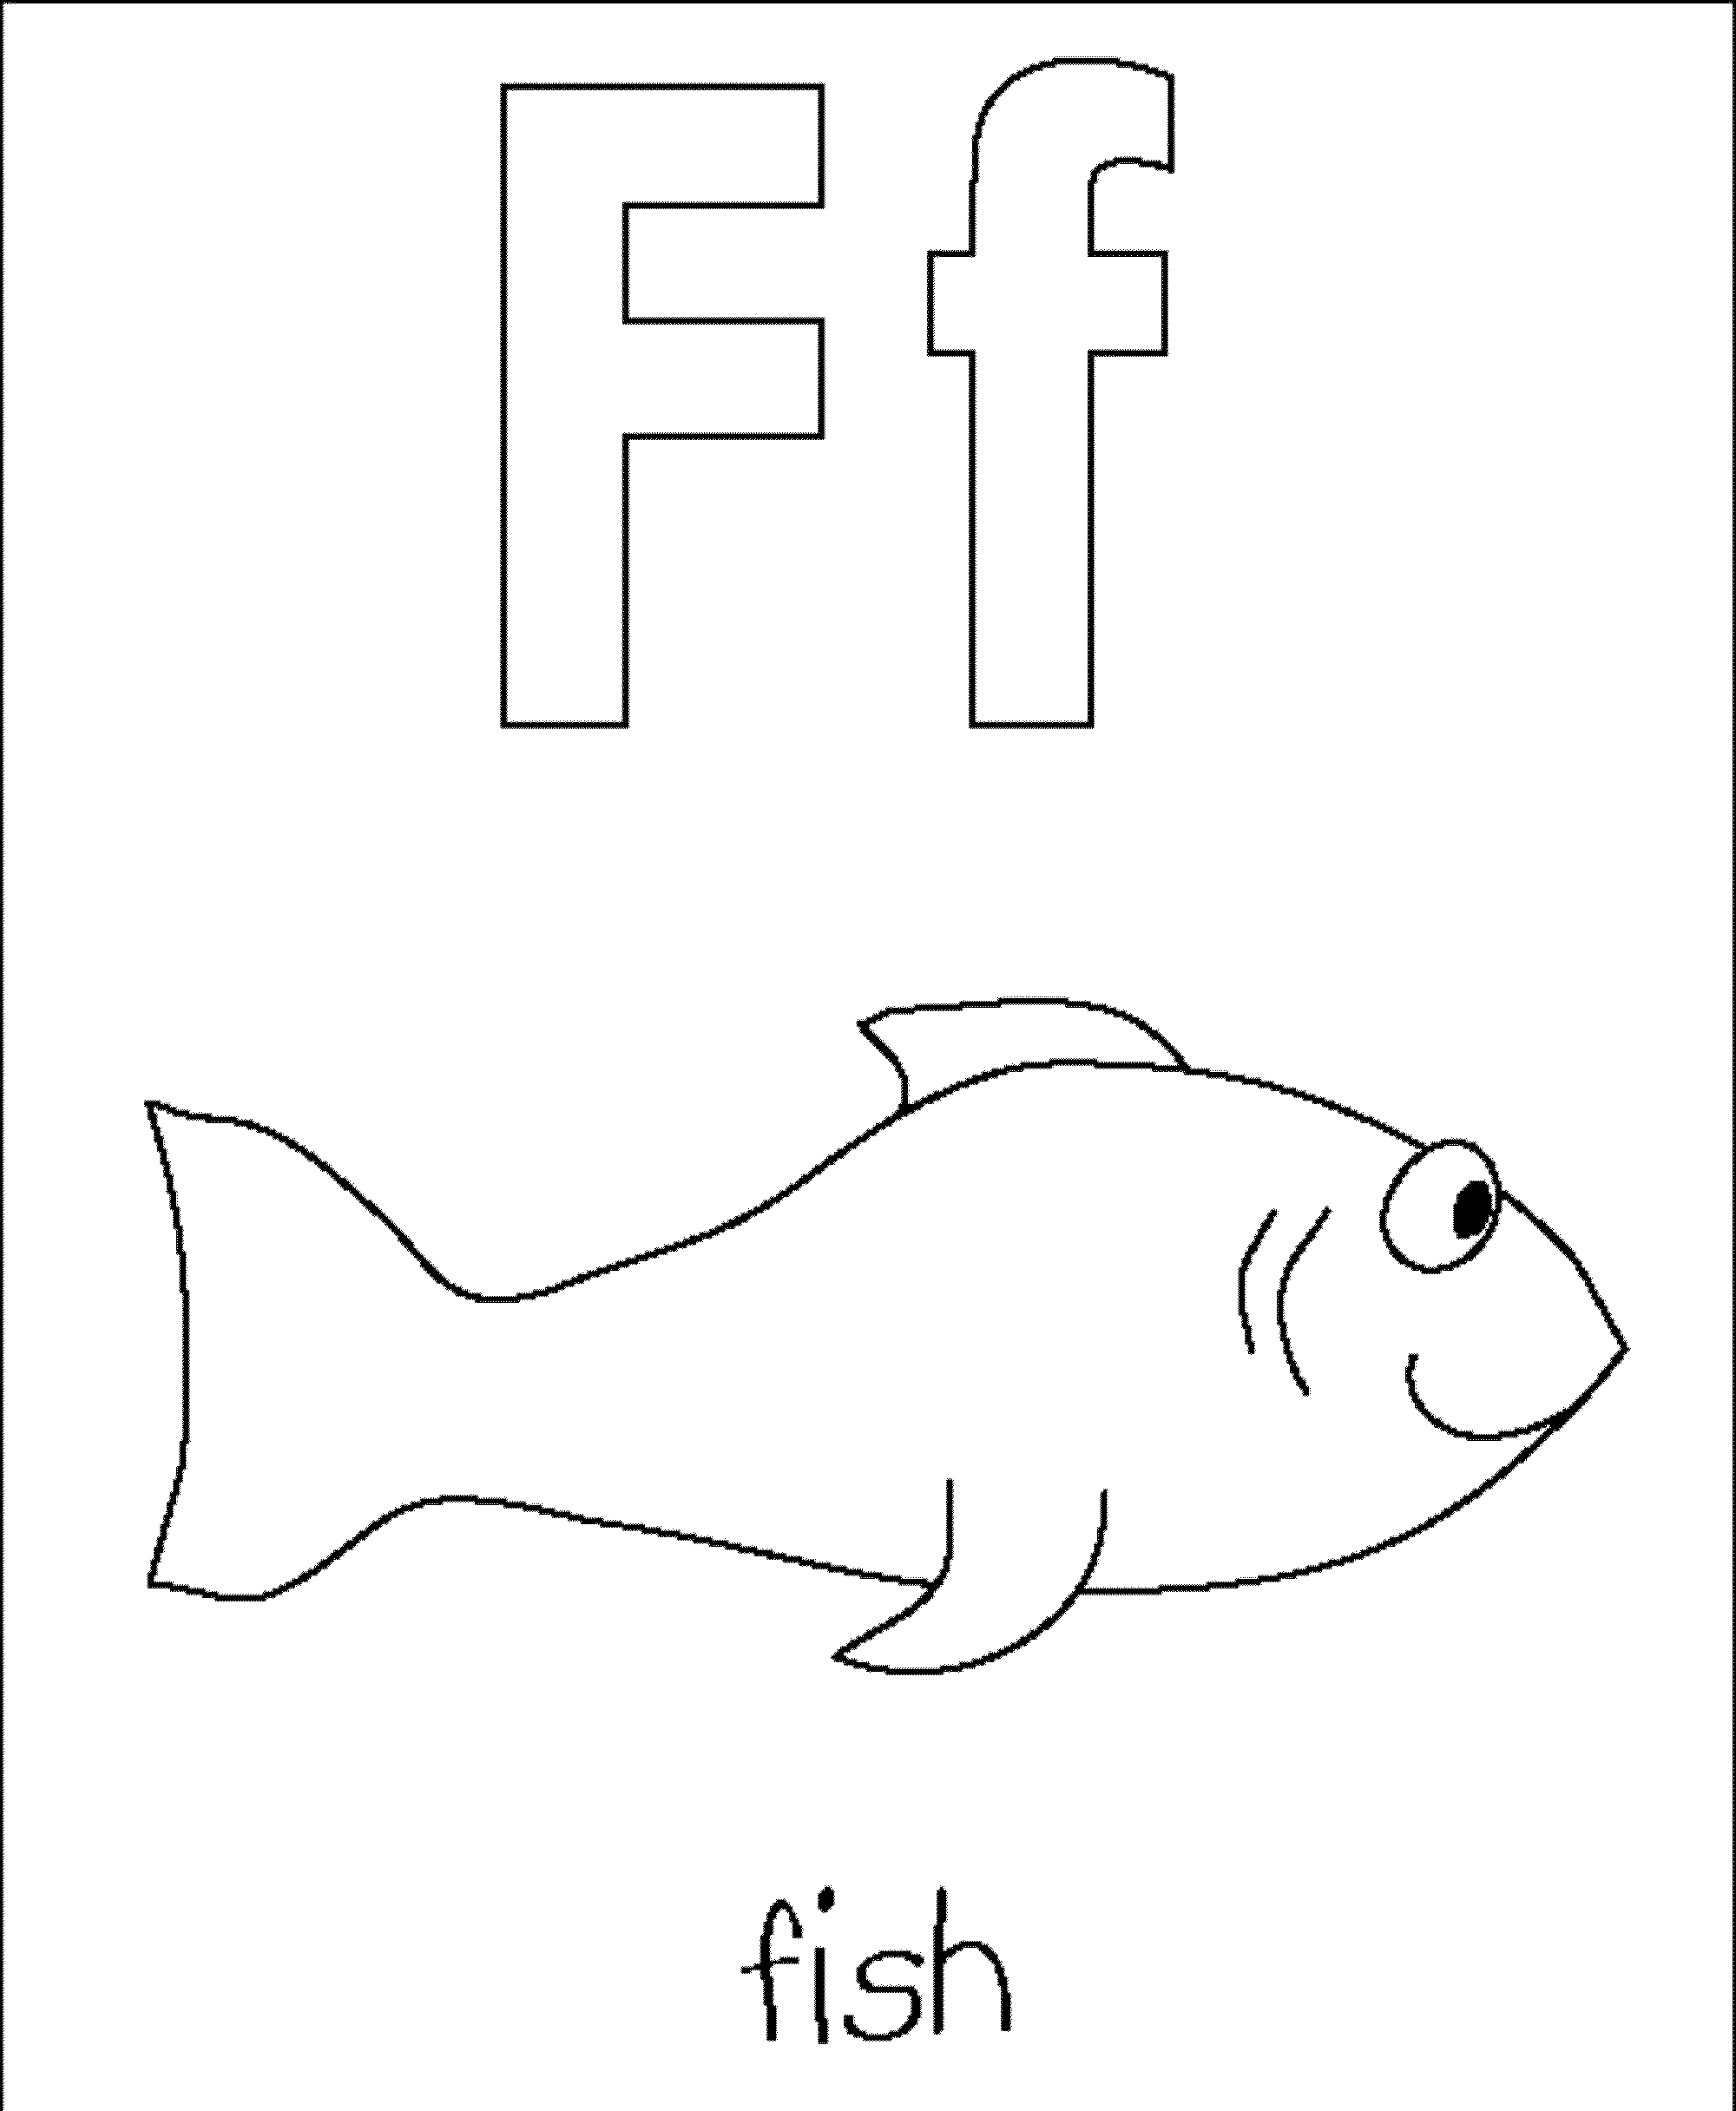 Letter F Coloring Page Fish Fish Coloring Page Abc Coloring Pages Letter A Coloring Pages